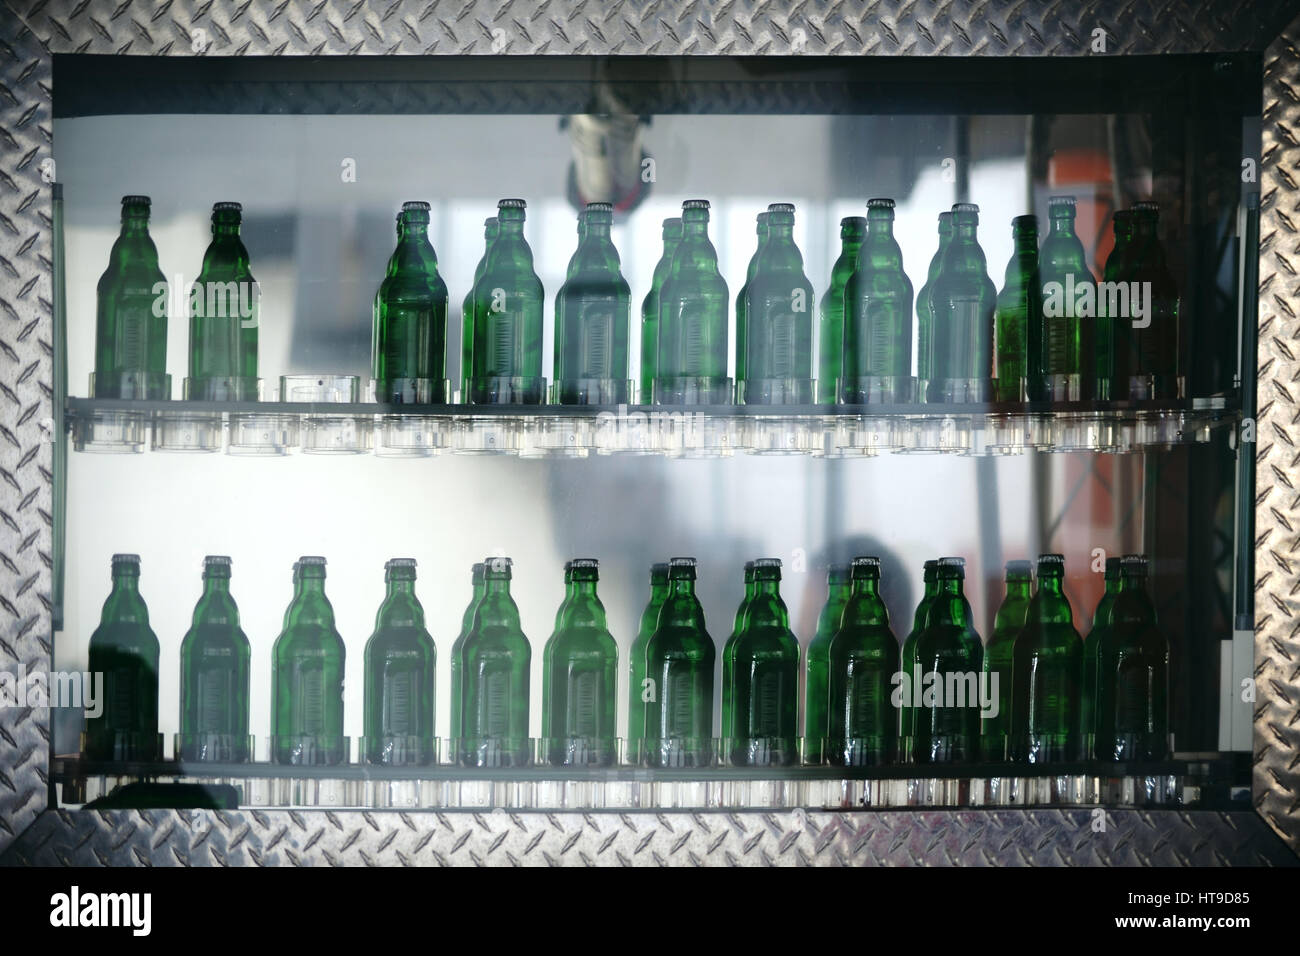 Green glass bottles with a drink are lined up in a glass shelf of a ...